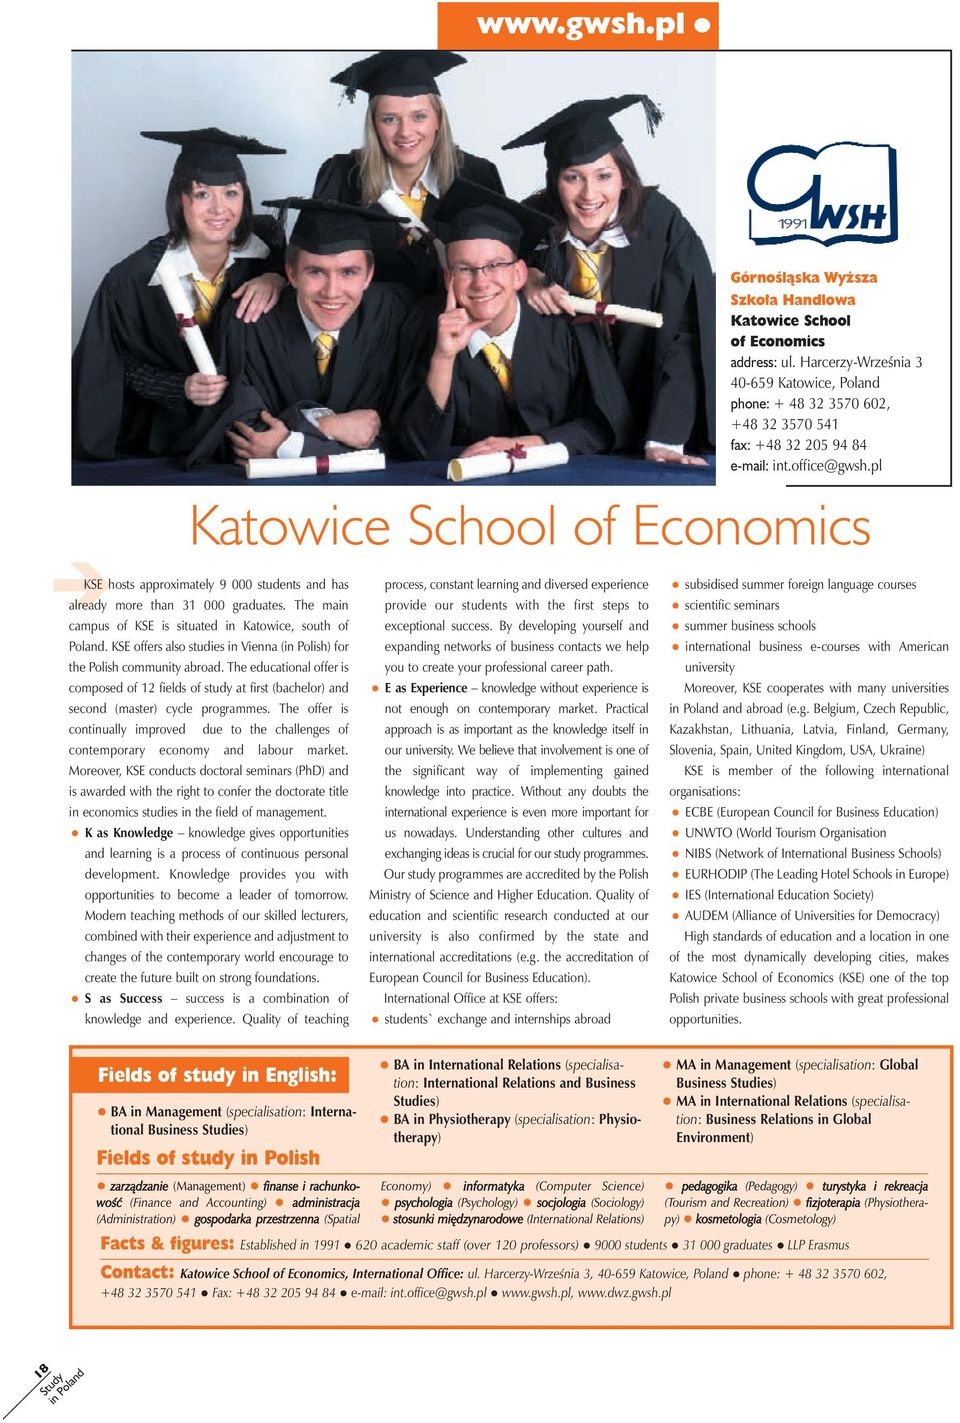 pl Katowice School of Economics KSE hosts approximately 9 000 students and has already more than 31 000 graduates. The main campus of KSE is situated in Katowice, south of Poland.